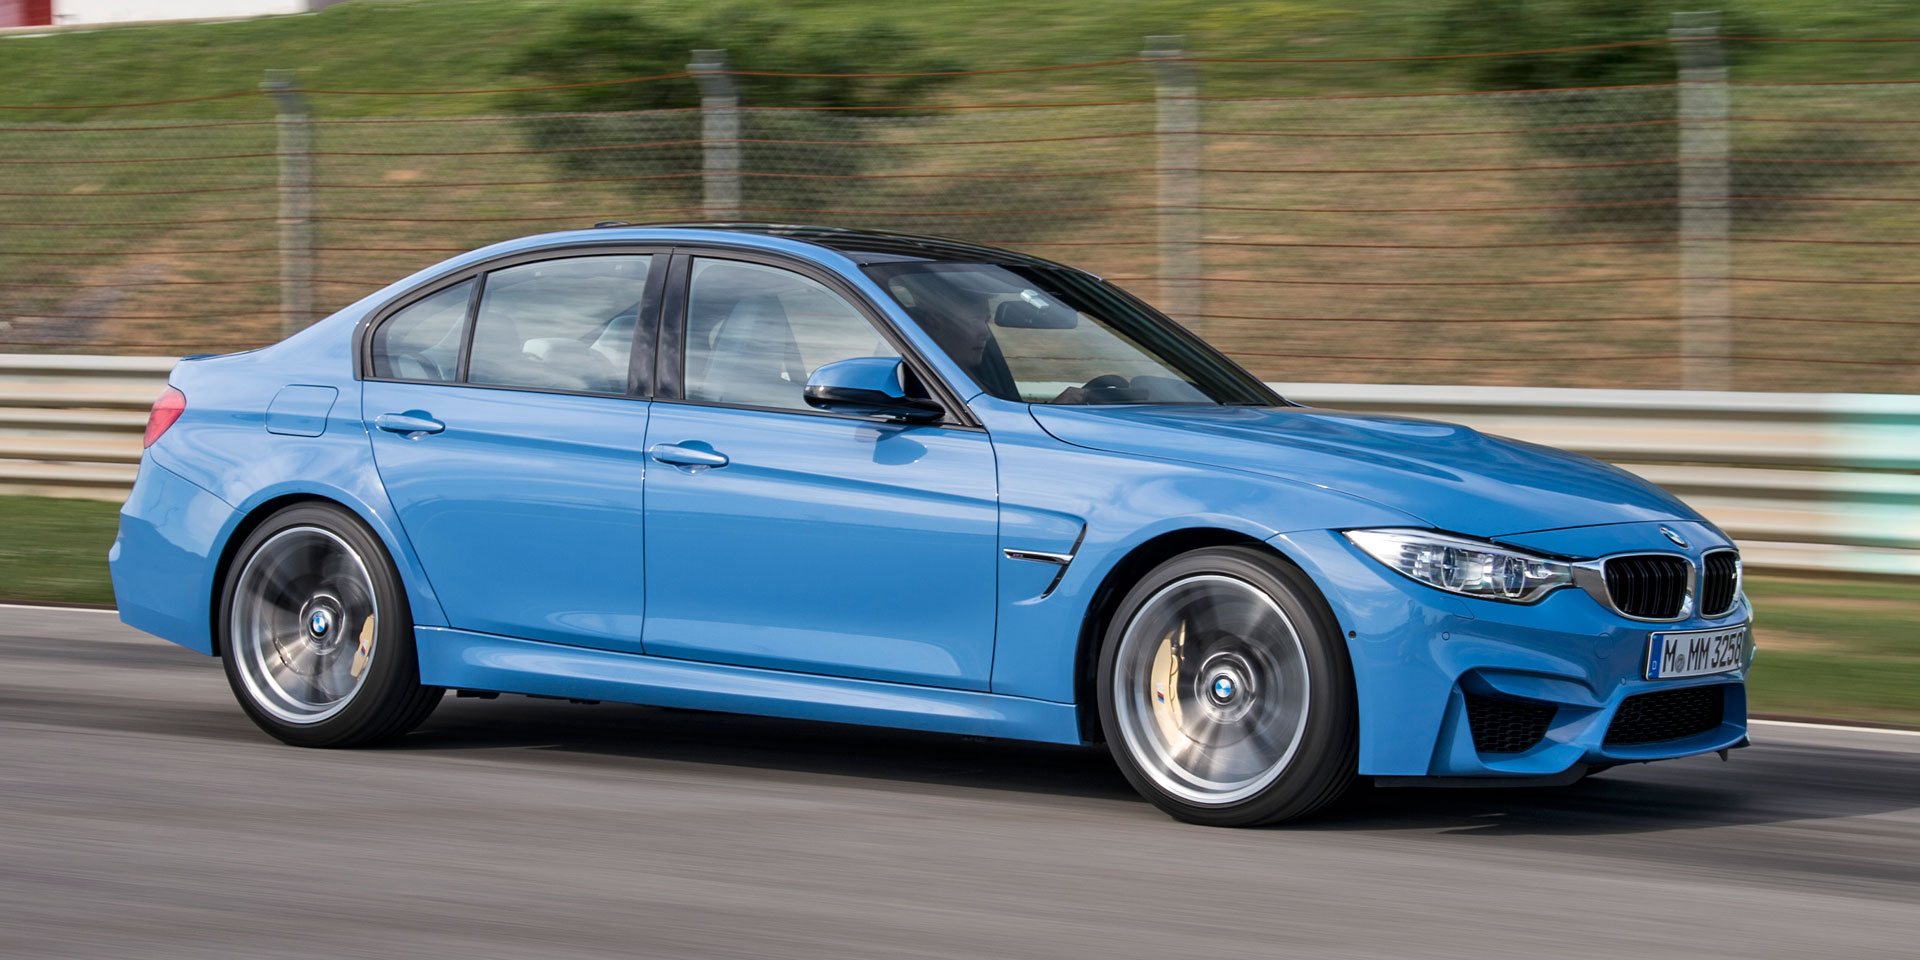 Used Cars For Sale New Cars For Sale Car Dealers Cars Chicago - 2015 bmw m3 sedan for sale